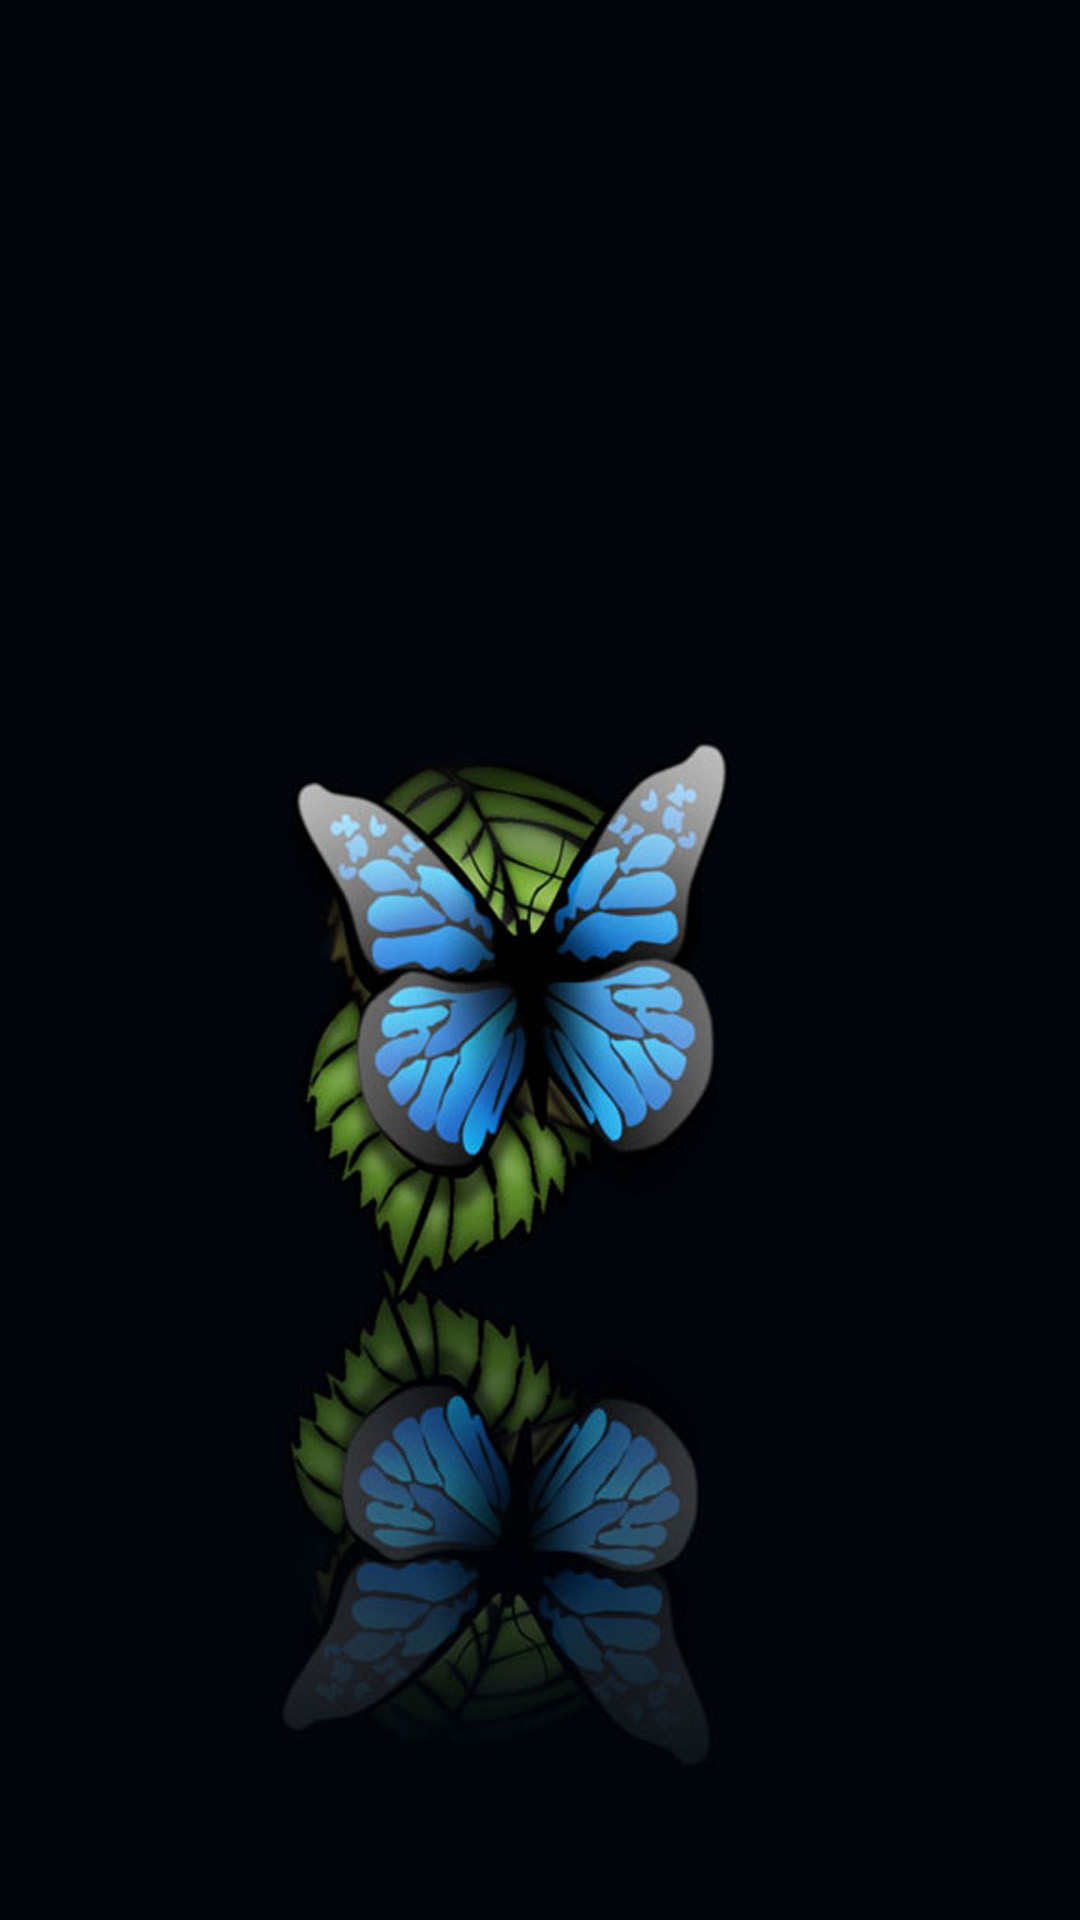 Blue Butterfly Black Background Android Wallpaper download 1080x1920